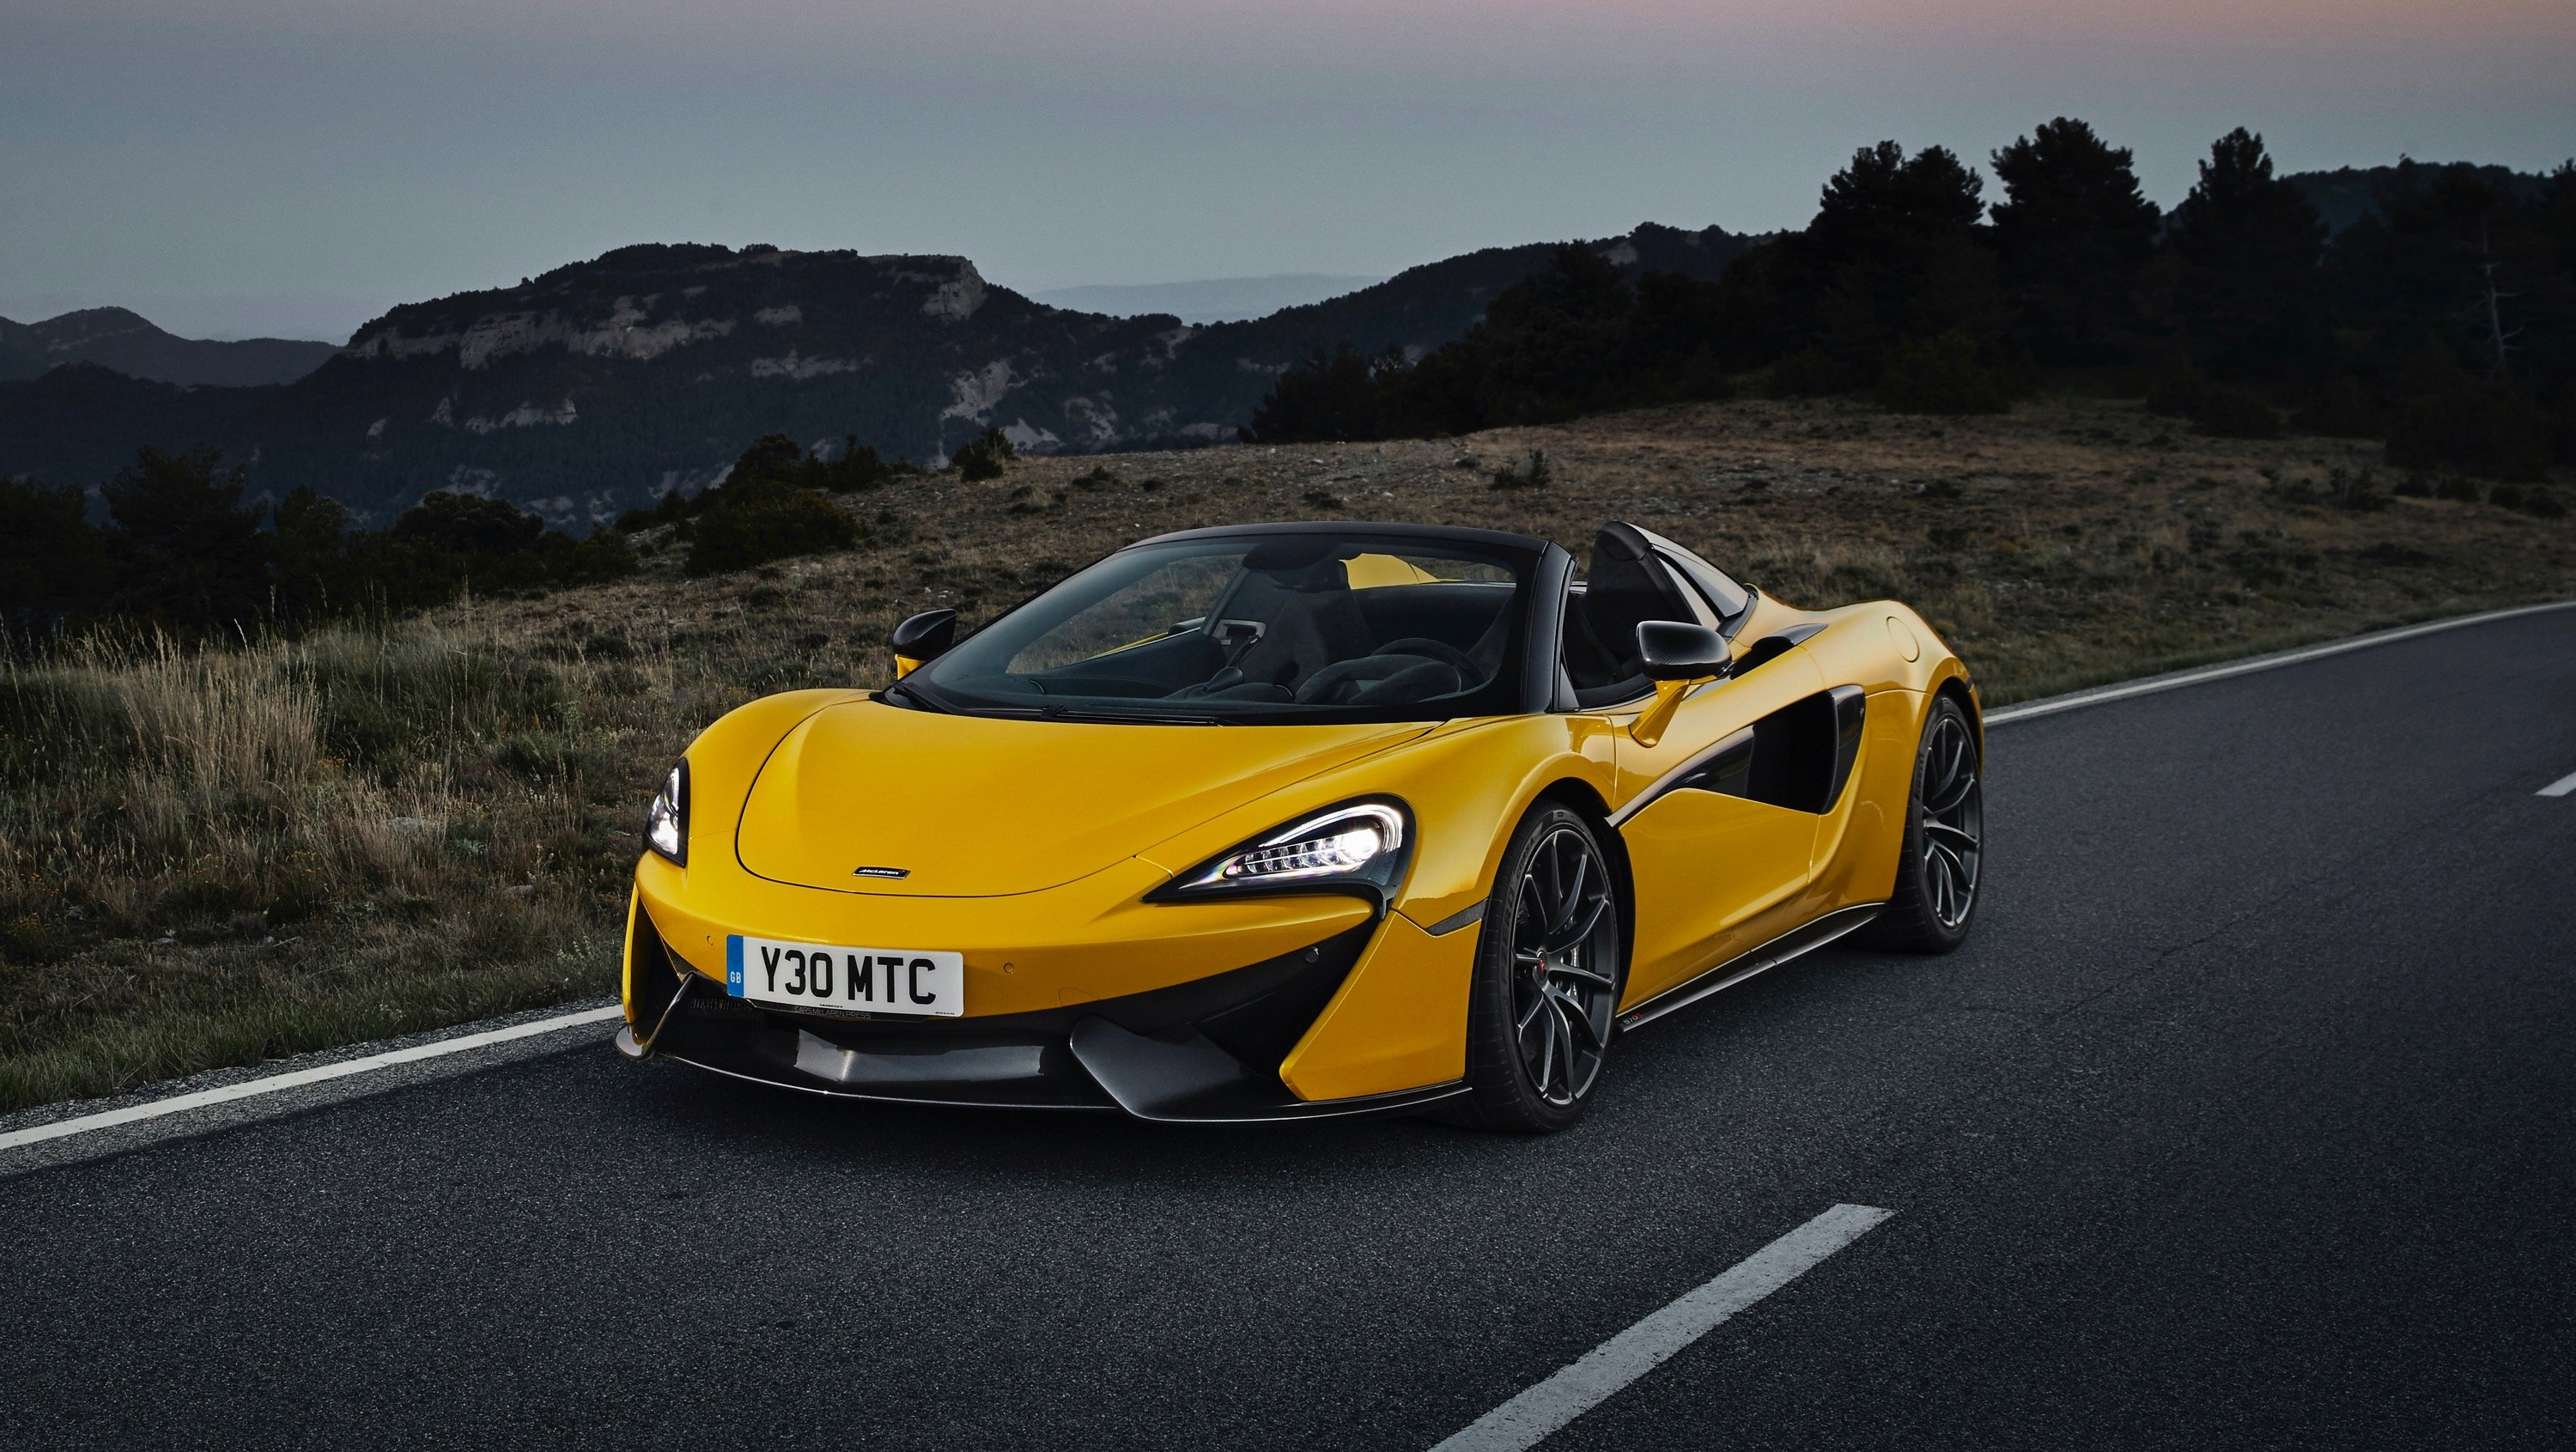 Mclaren Sports Series Winning Customers Away From Porsche